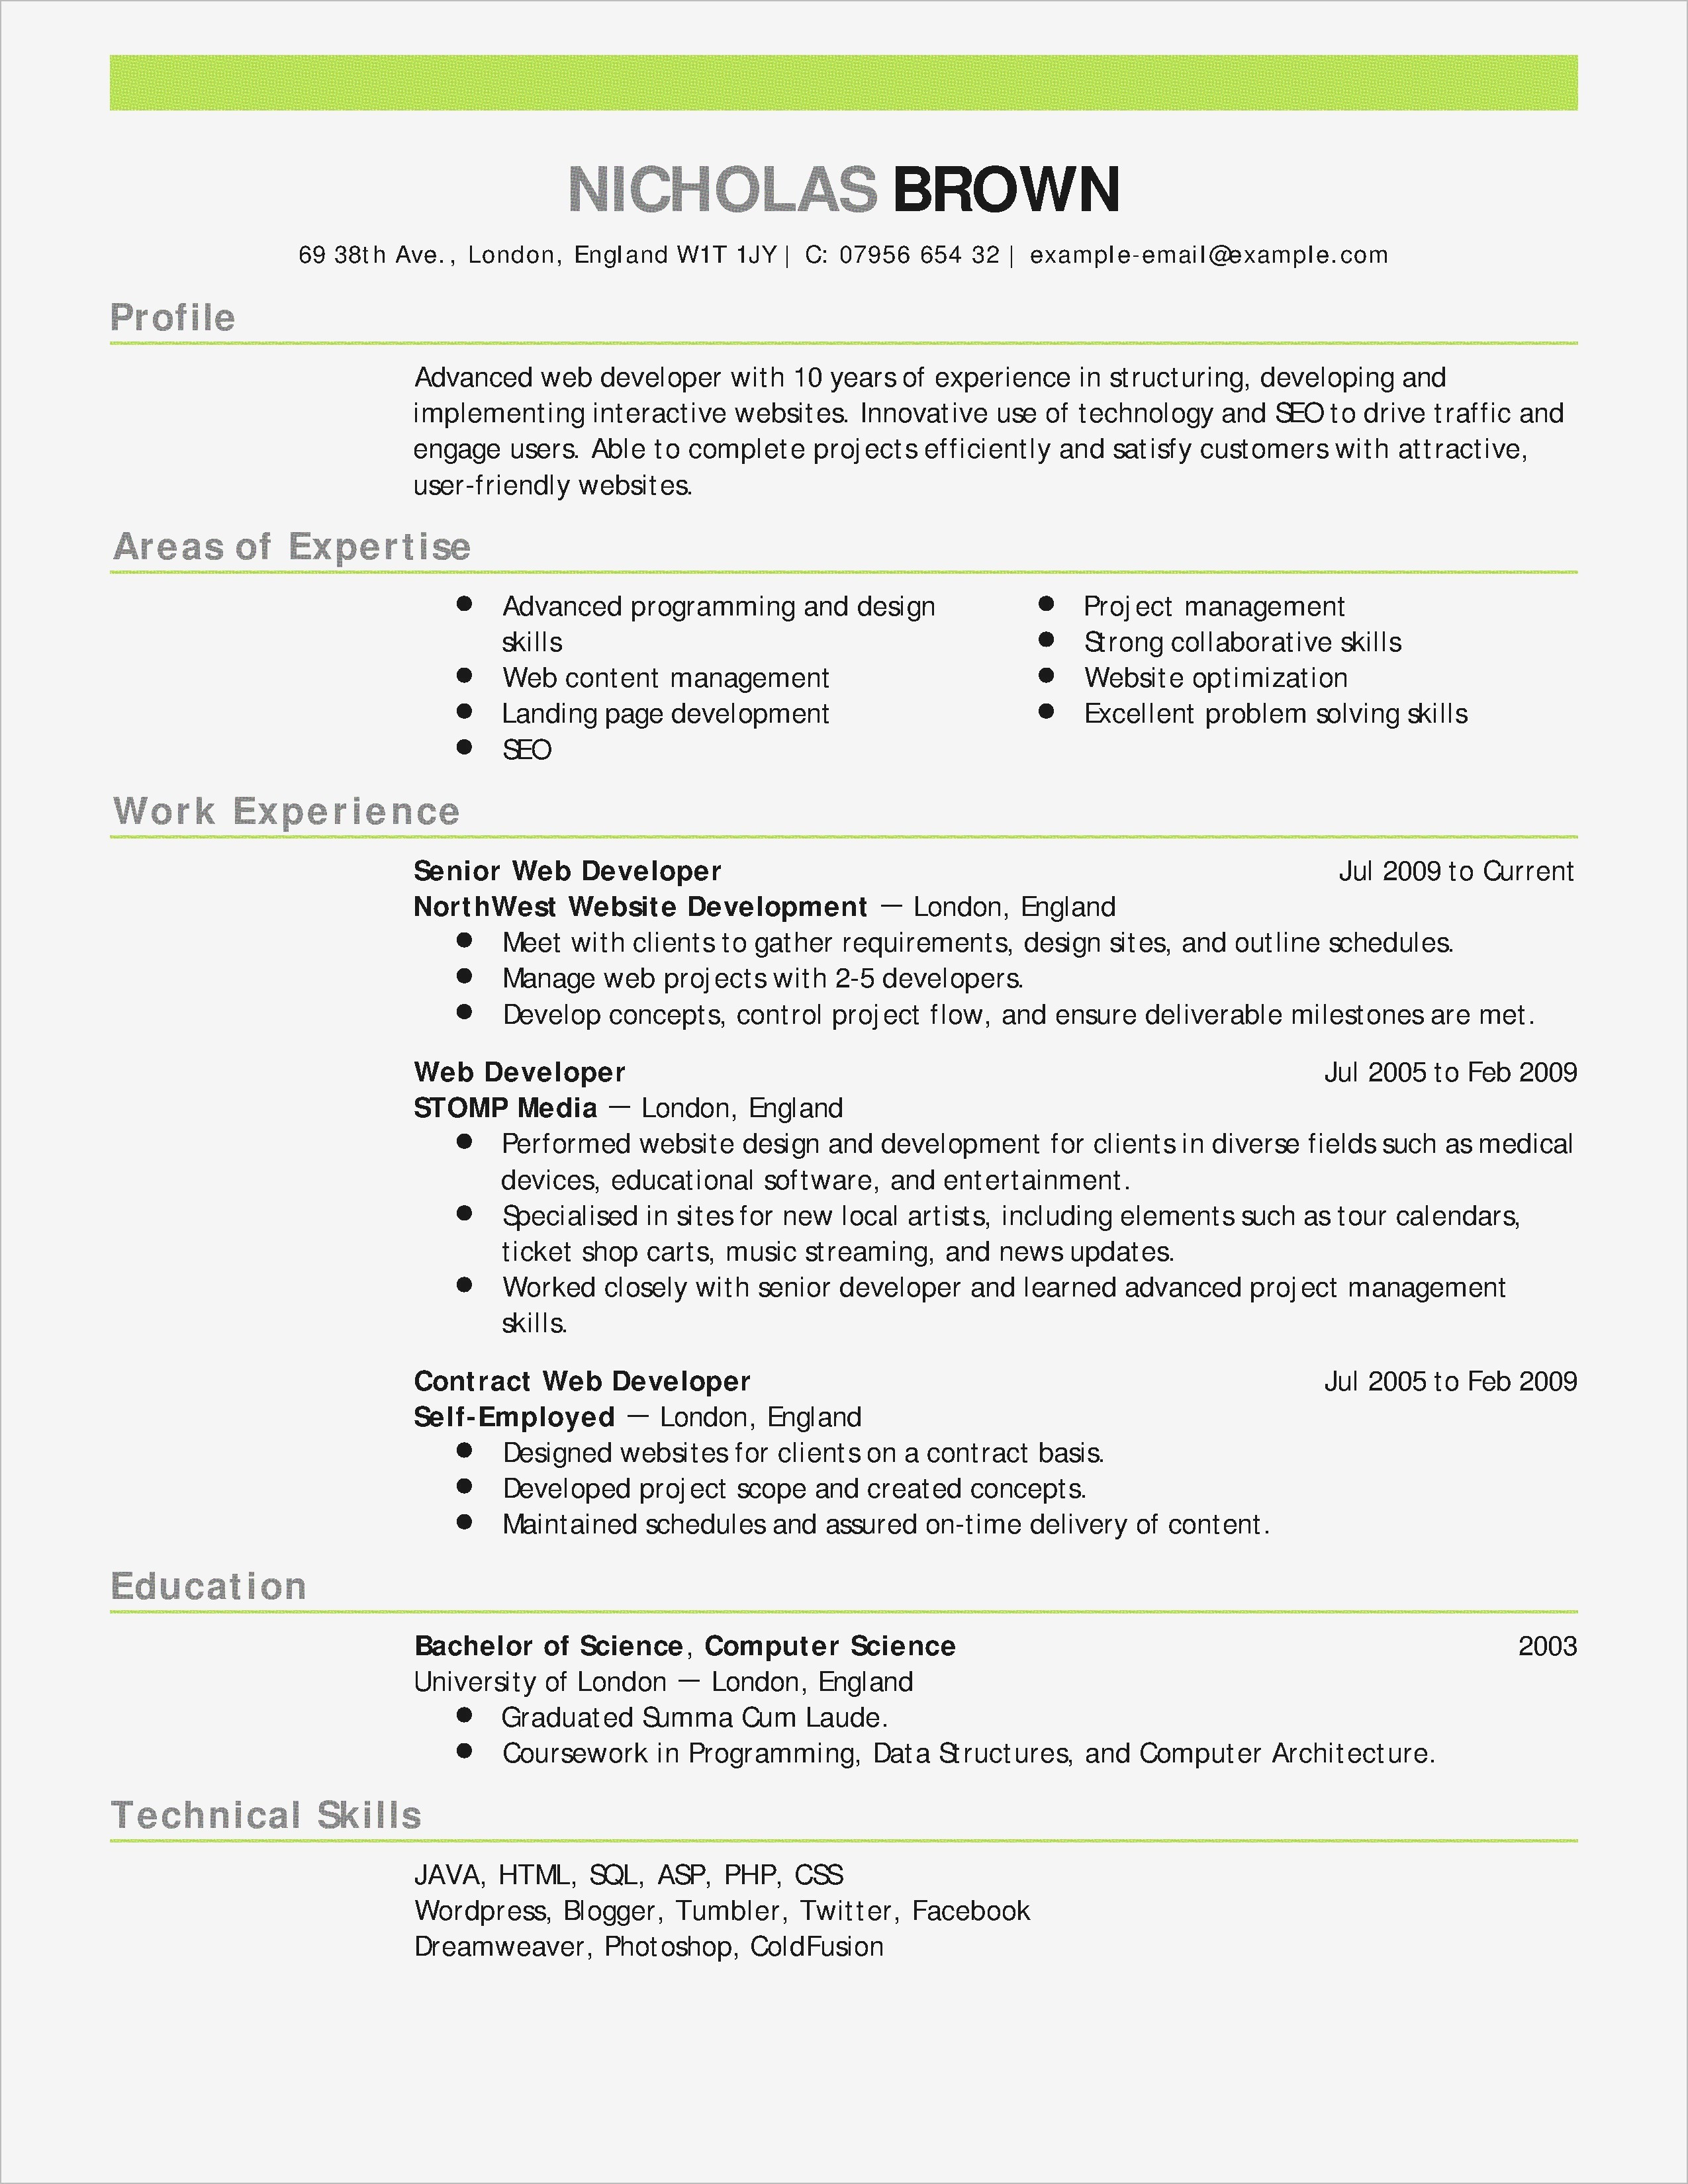 Refinance Letter Template - Cover Letters for Paralegals Personalinjurylovete